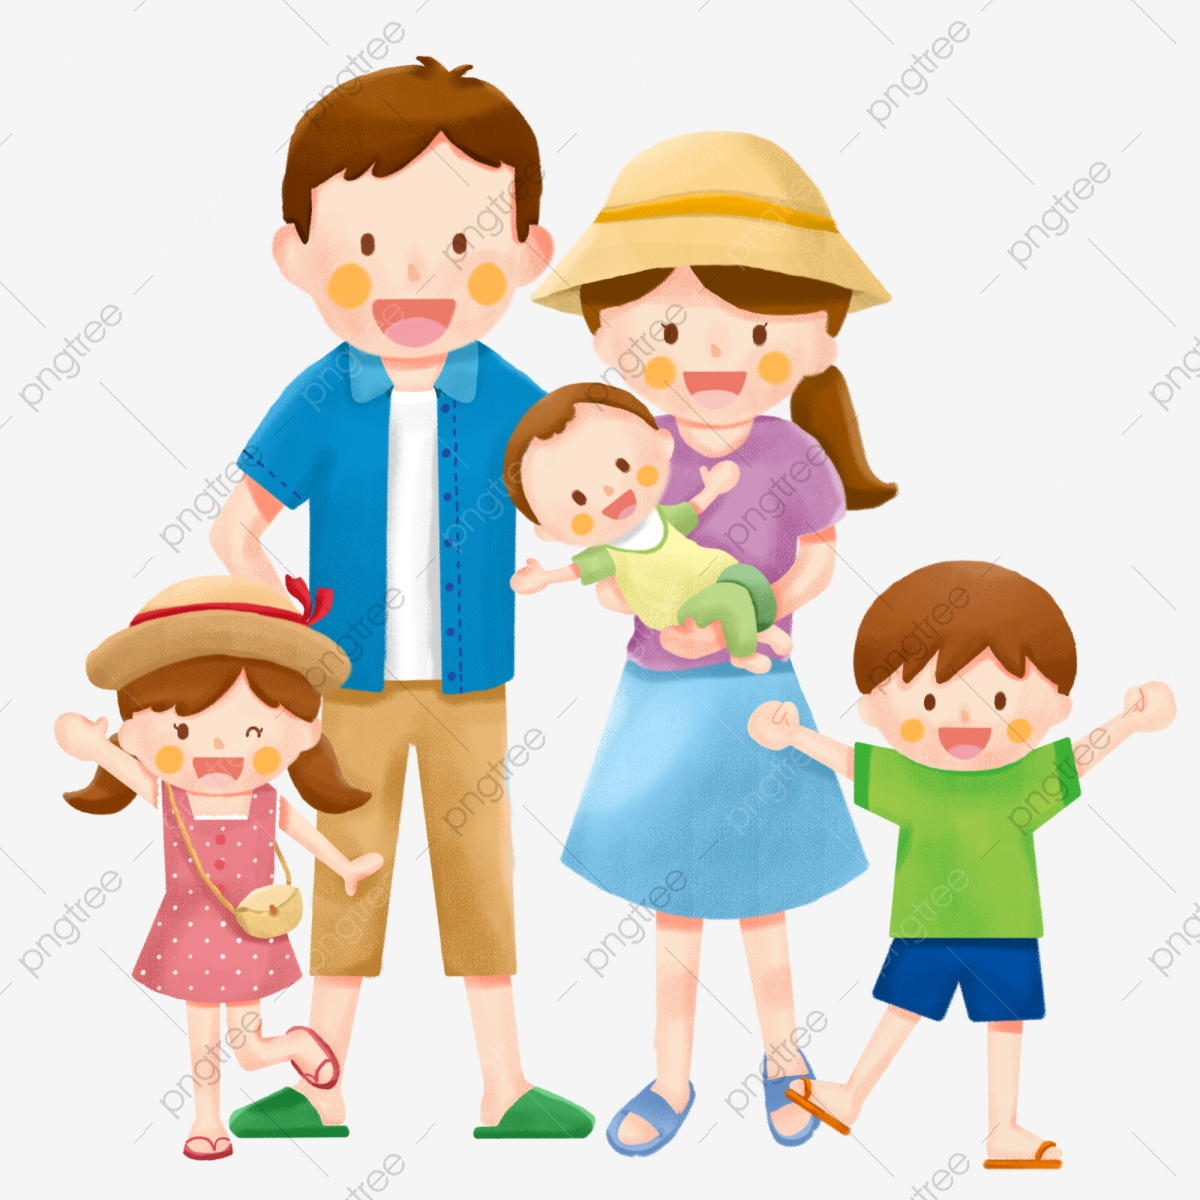 Family Family Family Of Five Travel Tourism Holiday Play Png Transparent Clipart Image And Psd File For Free Download